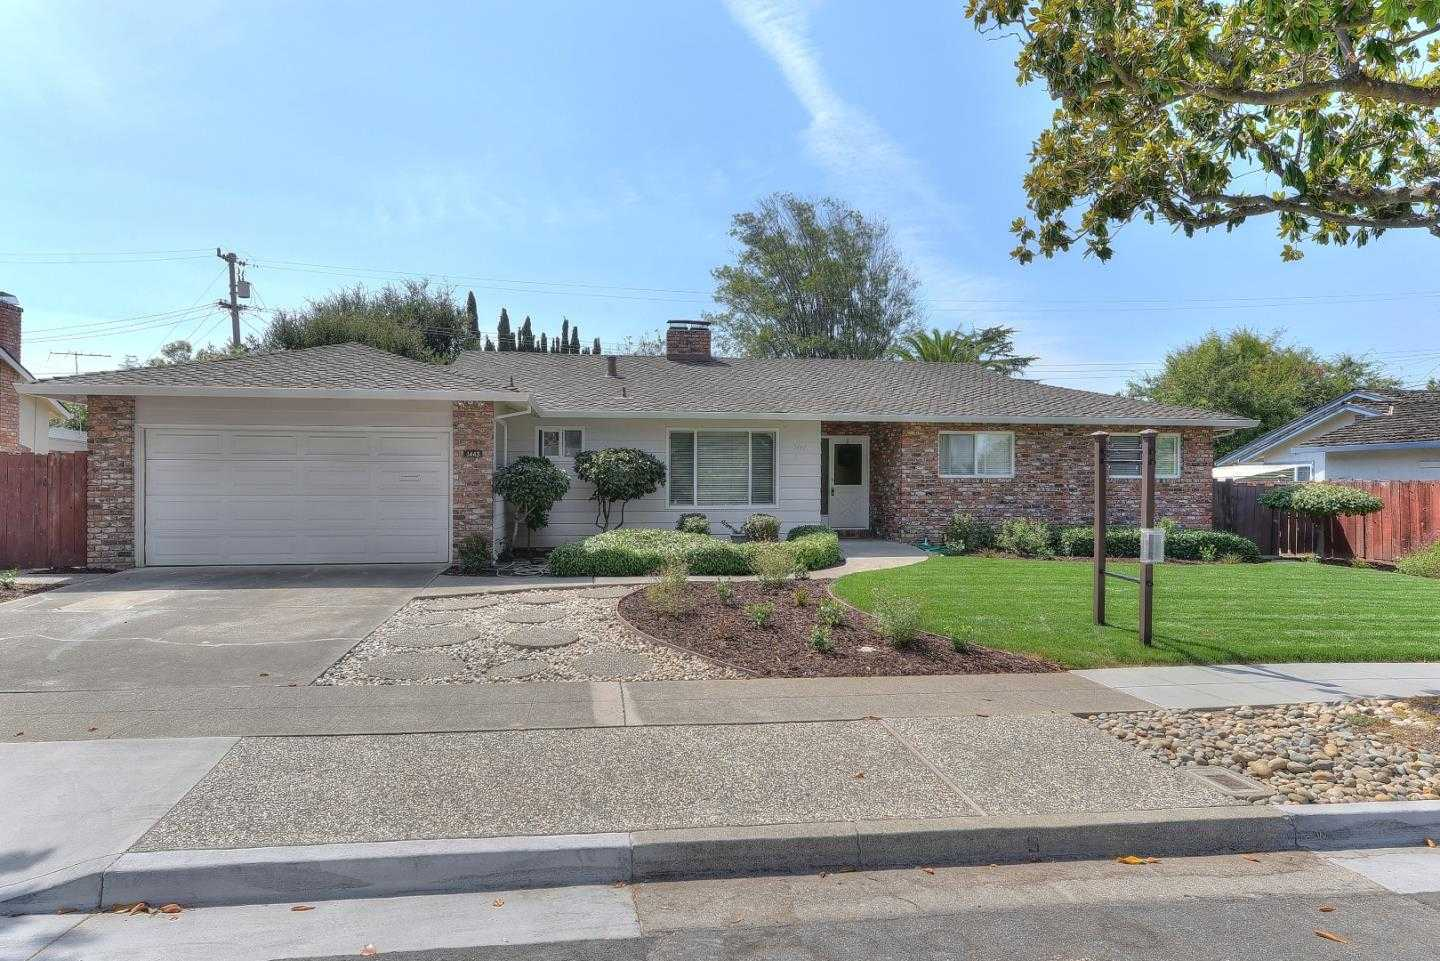 $1,698,000 - 4Br/3Ba -  for Sale in Sunnyvale